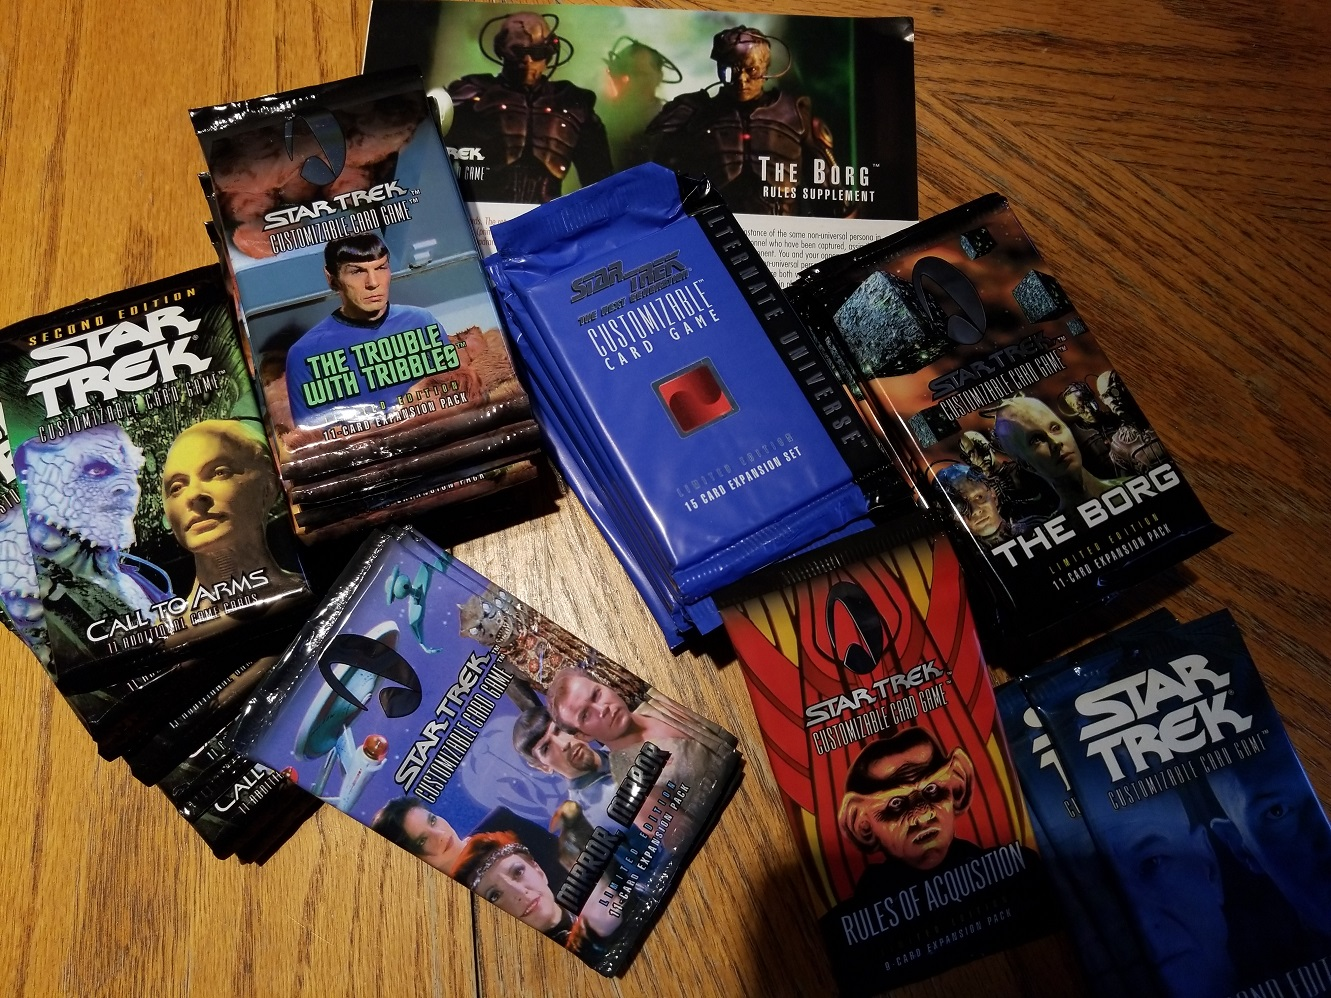 Star Trek CCG Sealed Booster Packs All Expansions!